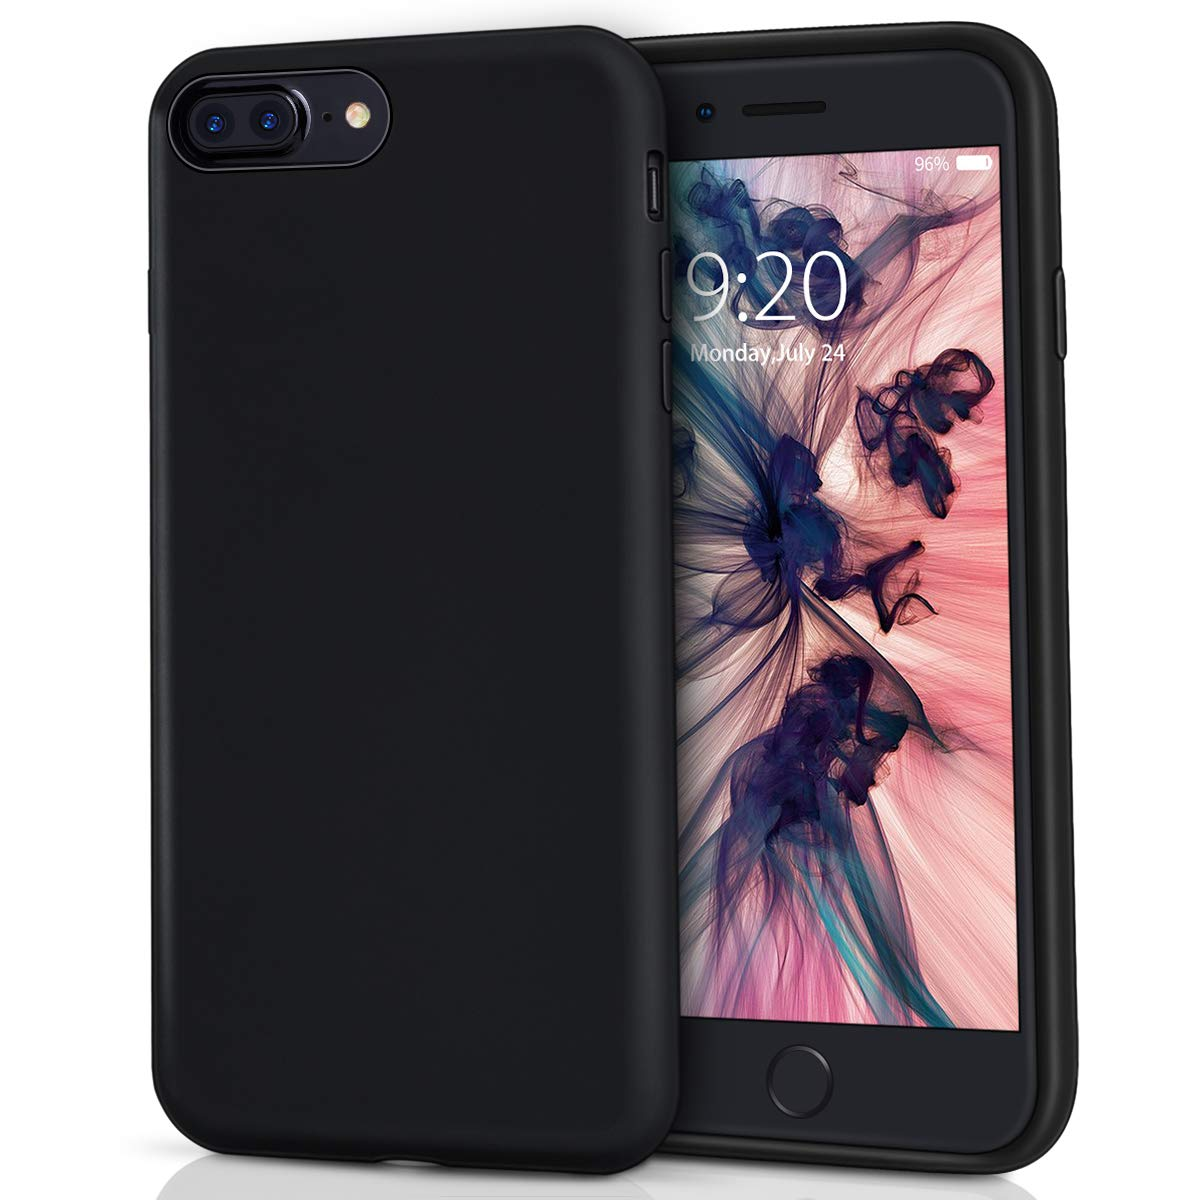 MILPROX Silicone Case, Pretty Series Liquid Silicone Gel Rubber, Shockproof Case with Microfiber Cloth Lining Cushion Compatible with iPhone 7 Plus/8 Plus - Black